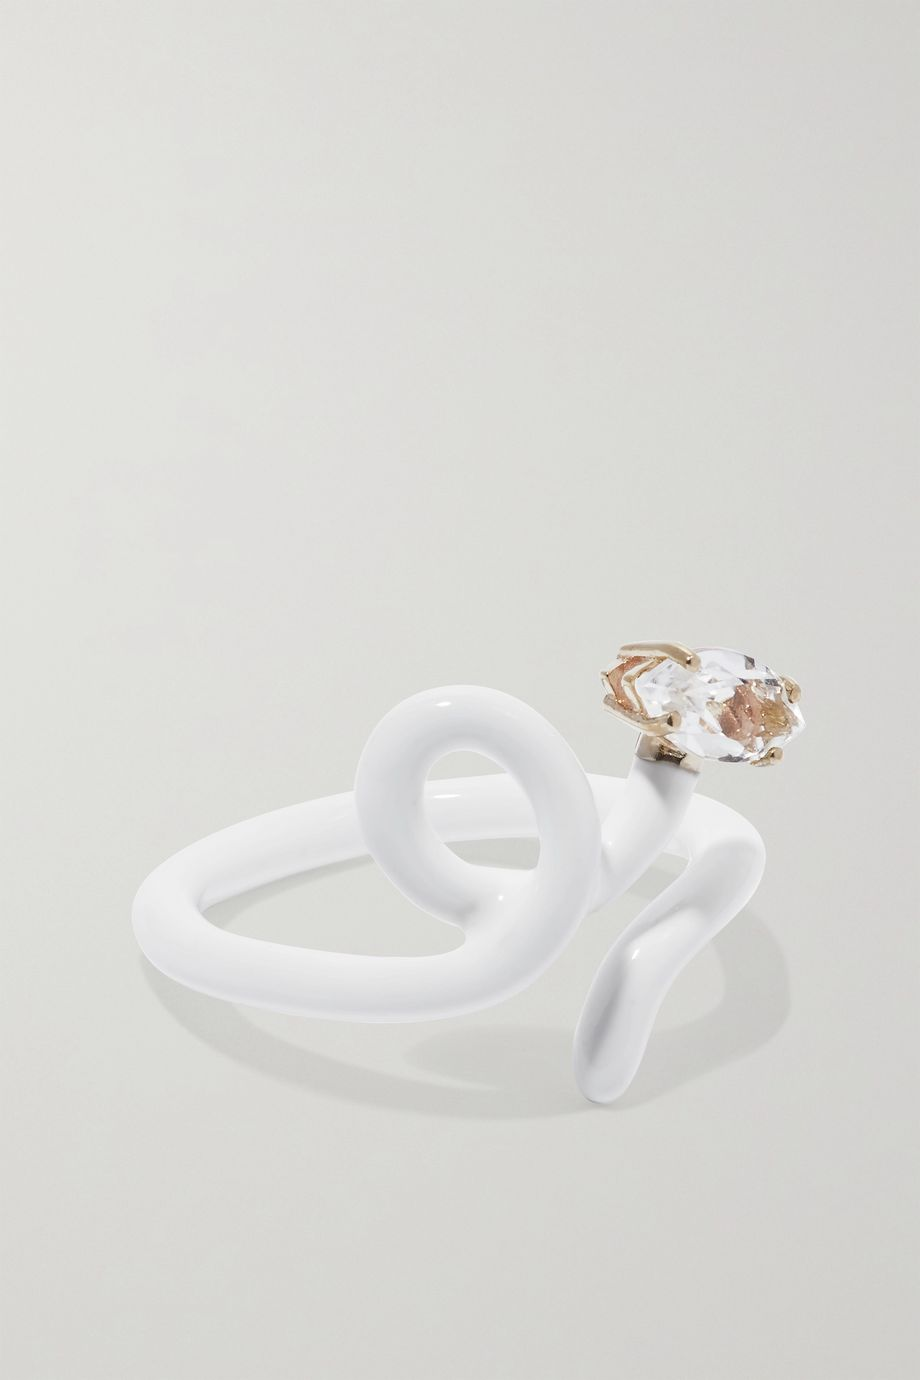 Bea Bongiasca Baby Vine Tendril enamel, gold and rock crystal ring